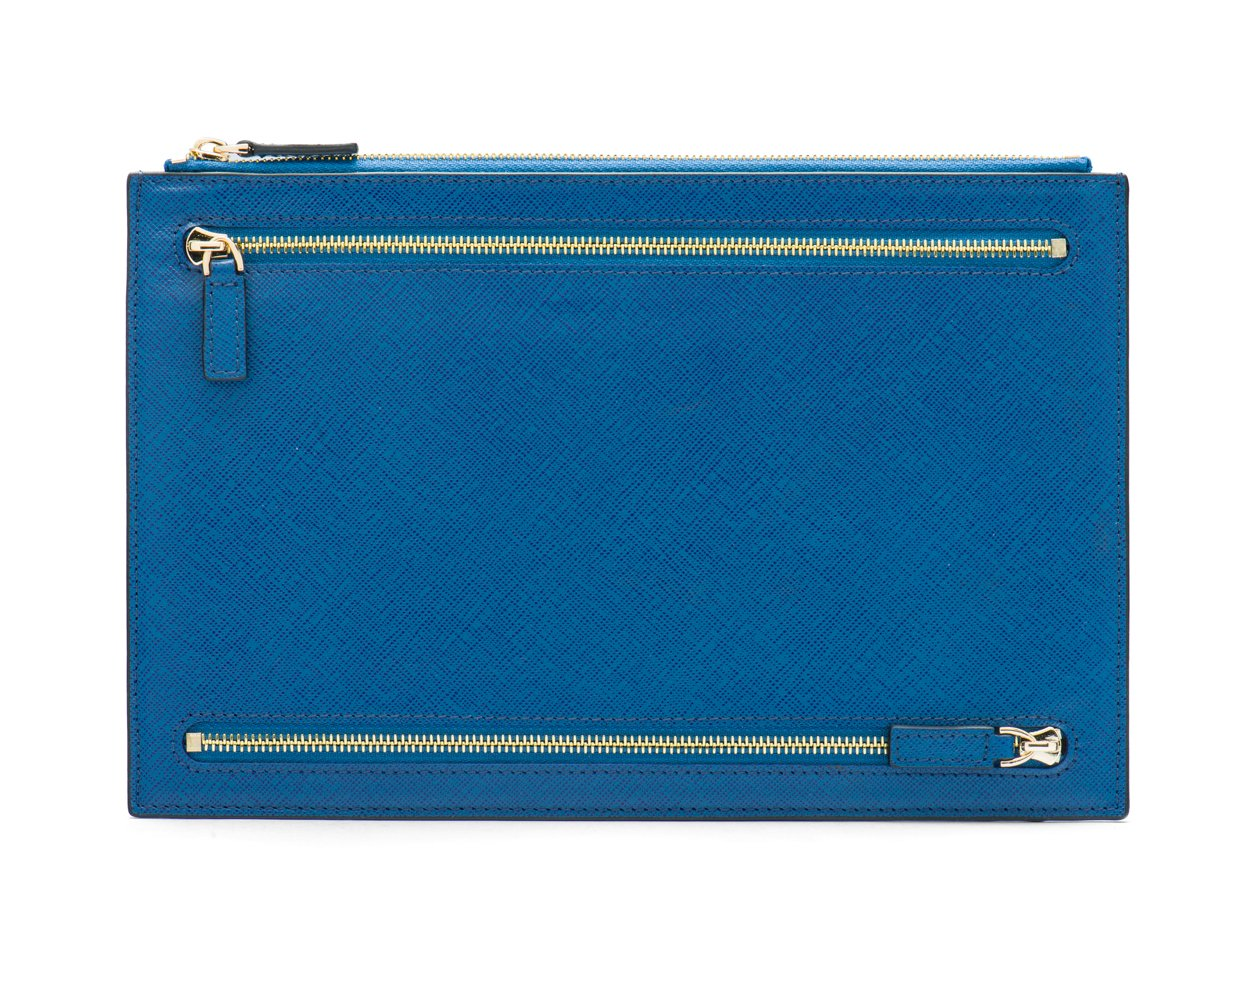 SAGEBROWN Cobalt Travel Document And Currency Case